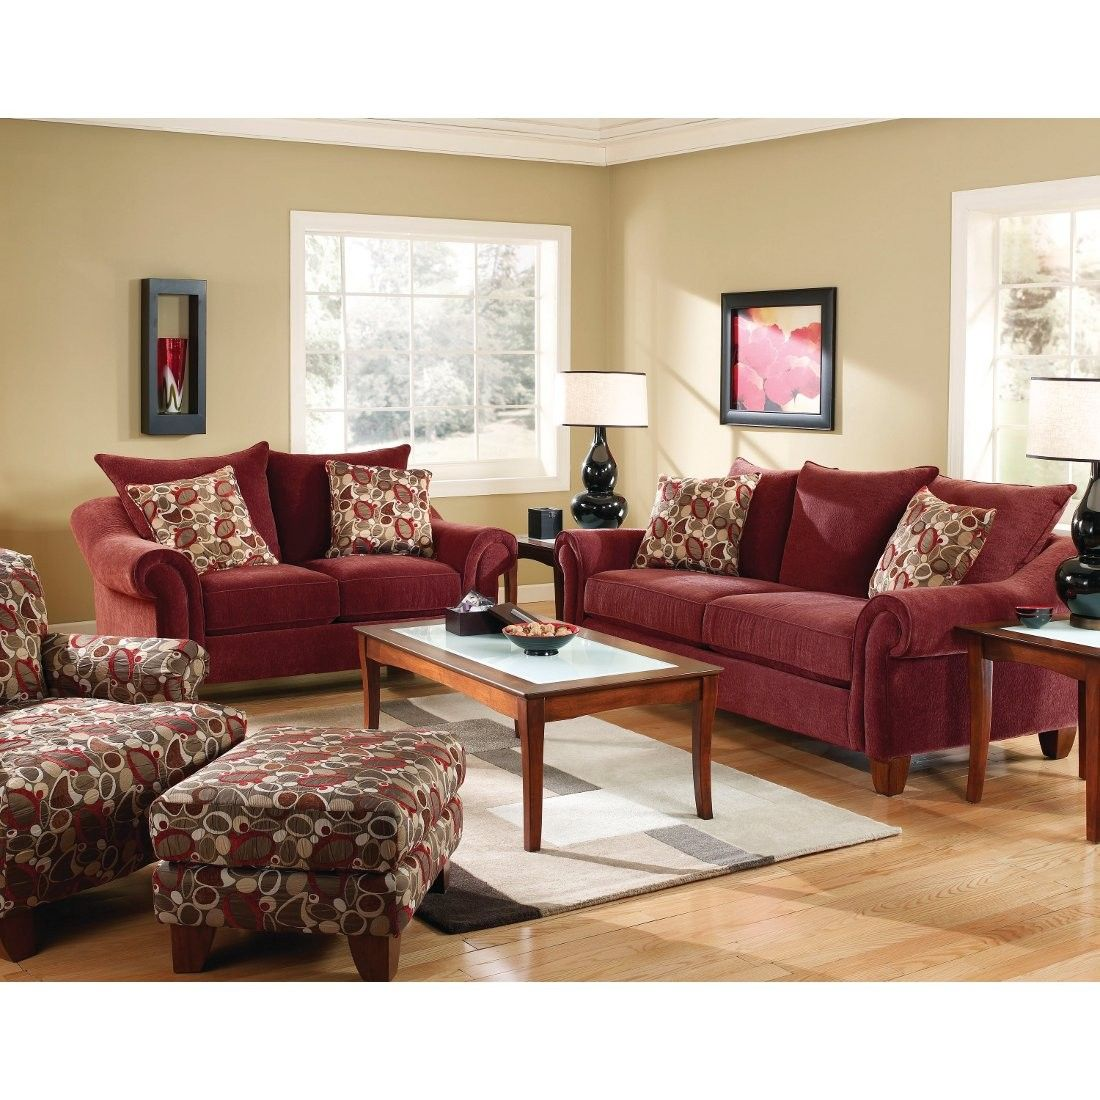 Corinthian Cebu Sofa Wine 2833s Conn 39 S Home Plus Accent Chair Copper Ac128